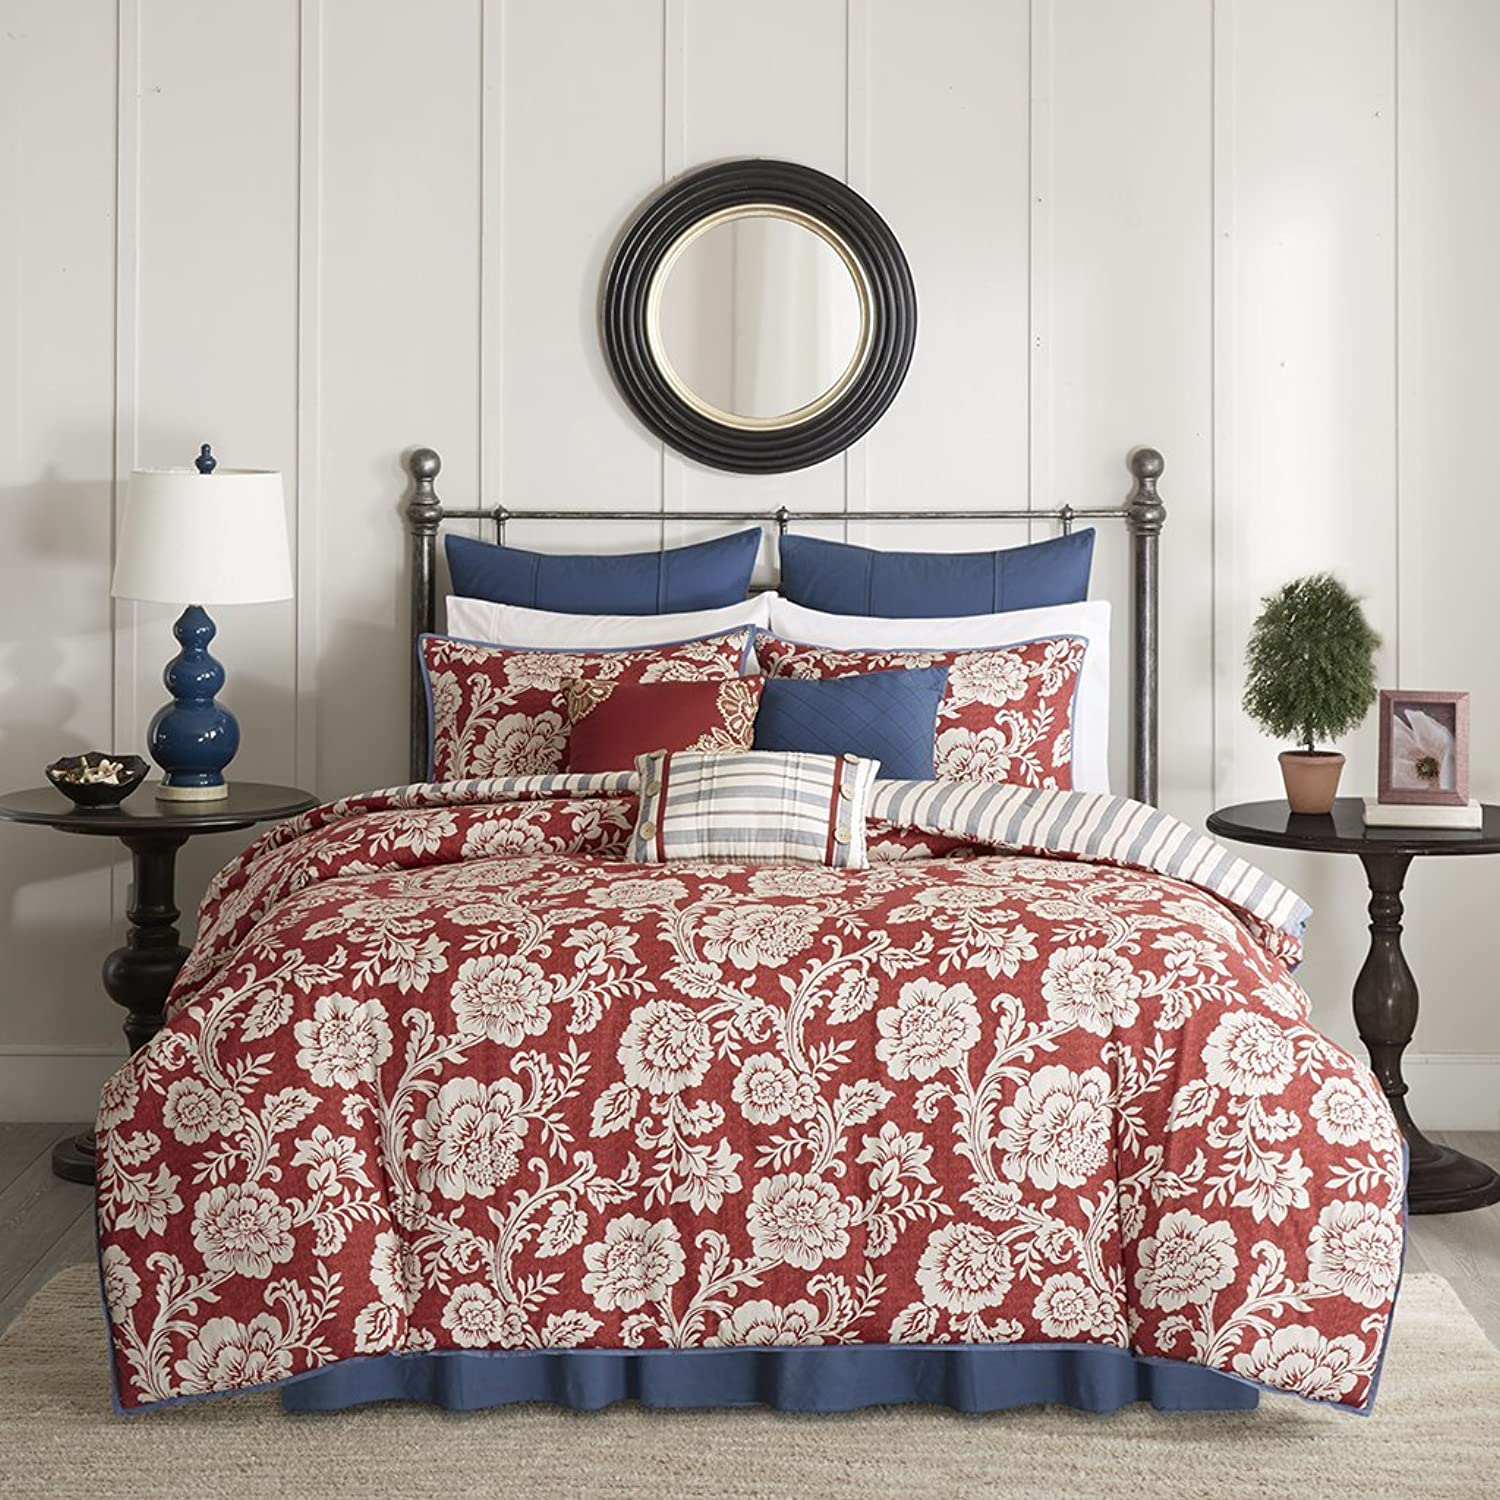 Madison Park Lucy Duvet Cover Cal King Size - Red, Navy, Reversible Floral, Stripes Duvet Cover Set – 9 Piece – Cotton Twill, Cotton Poly Blend Reverse Light Weight Bed Comforter Covers